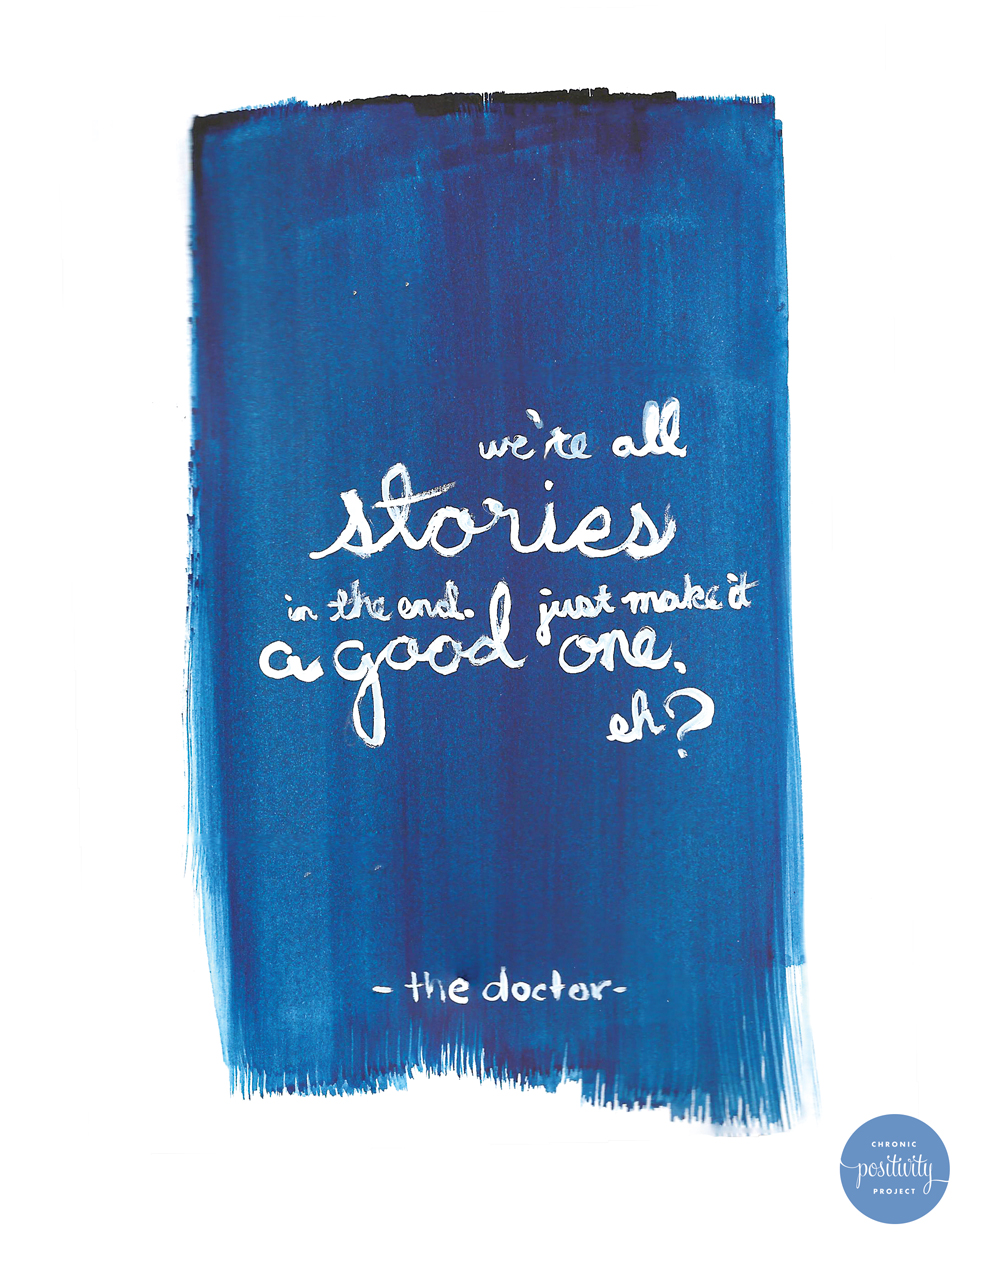 """""""We're all stories in the end, so make it a good one, eh?"""" A quote from the Doctor 